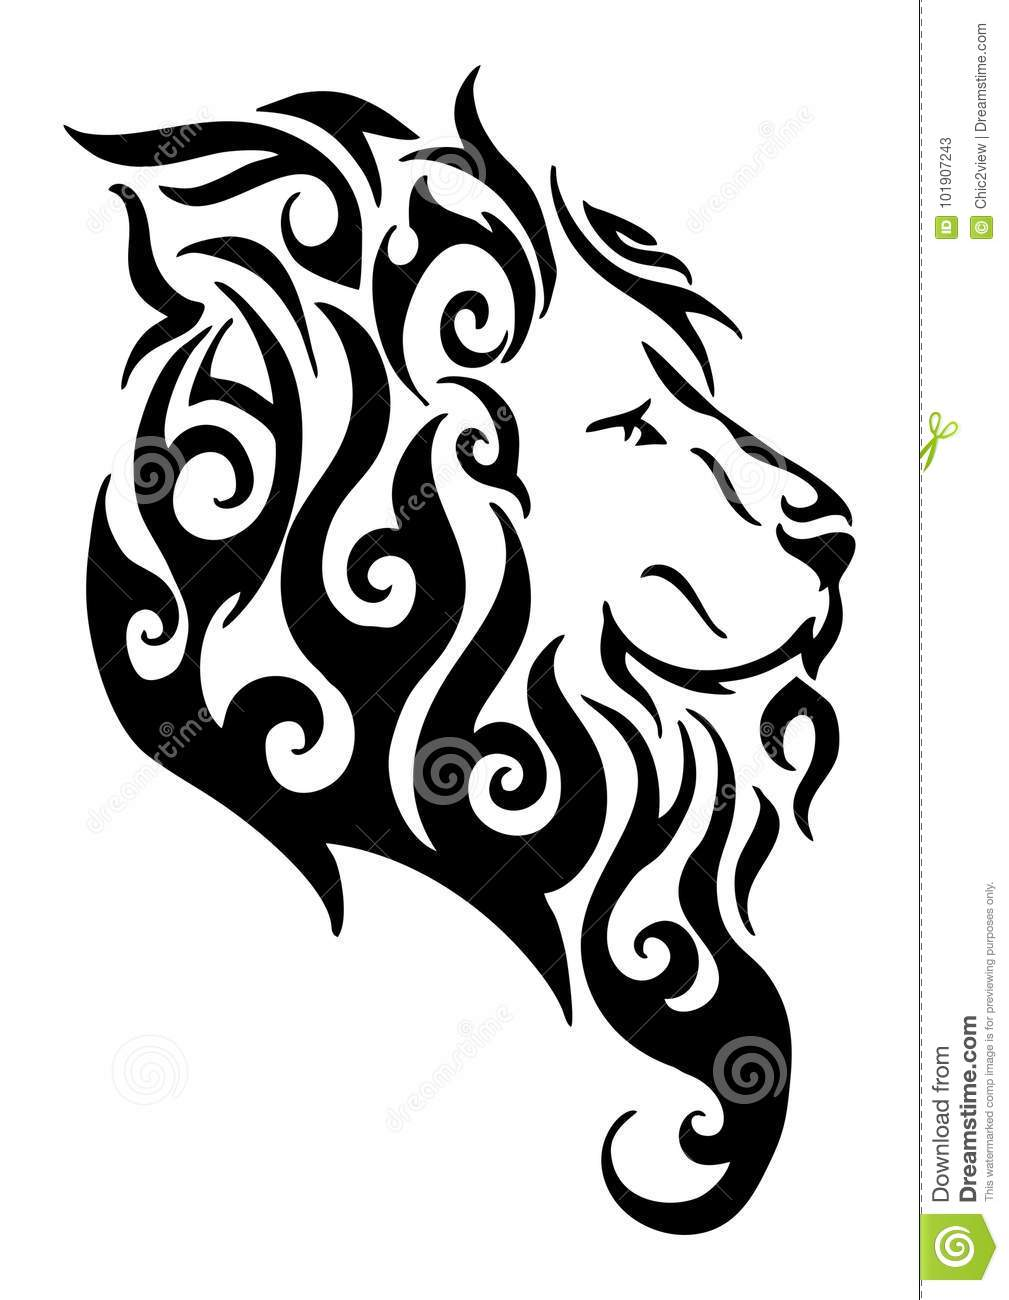 Silhouette Lion Side Head Tribal Tattoo Logo Design From Flame Fire ...